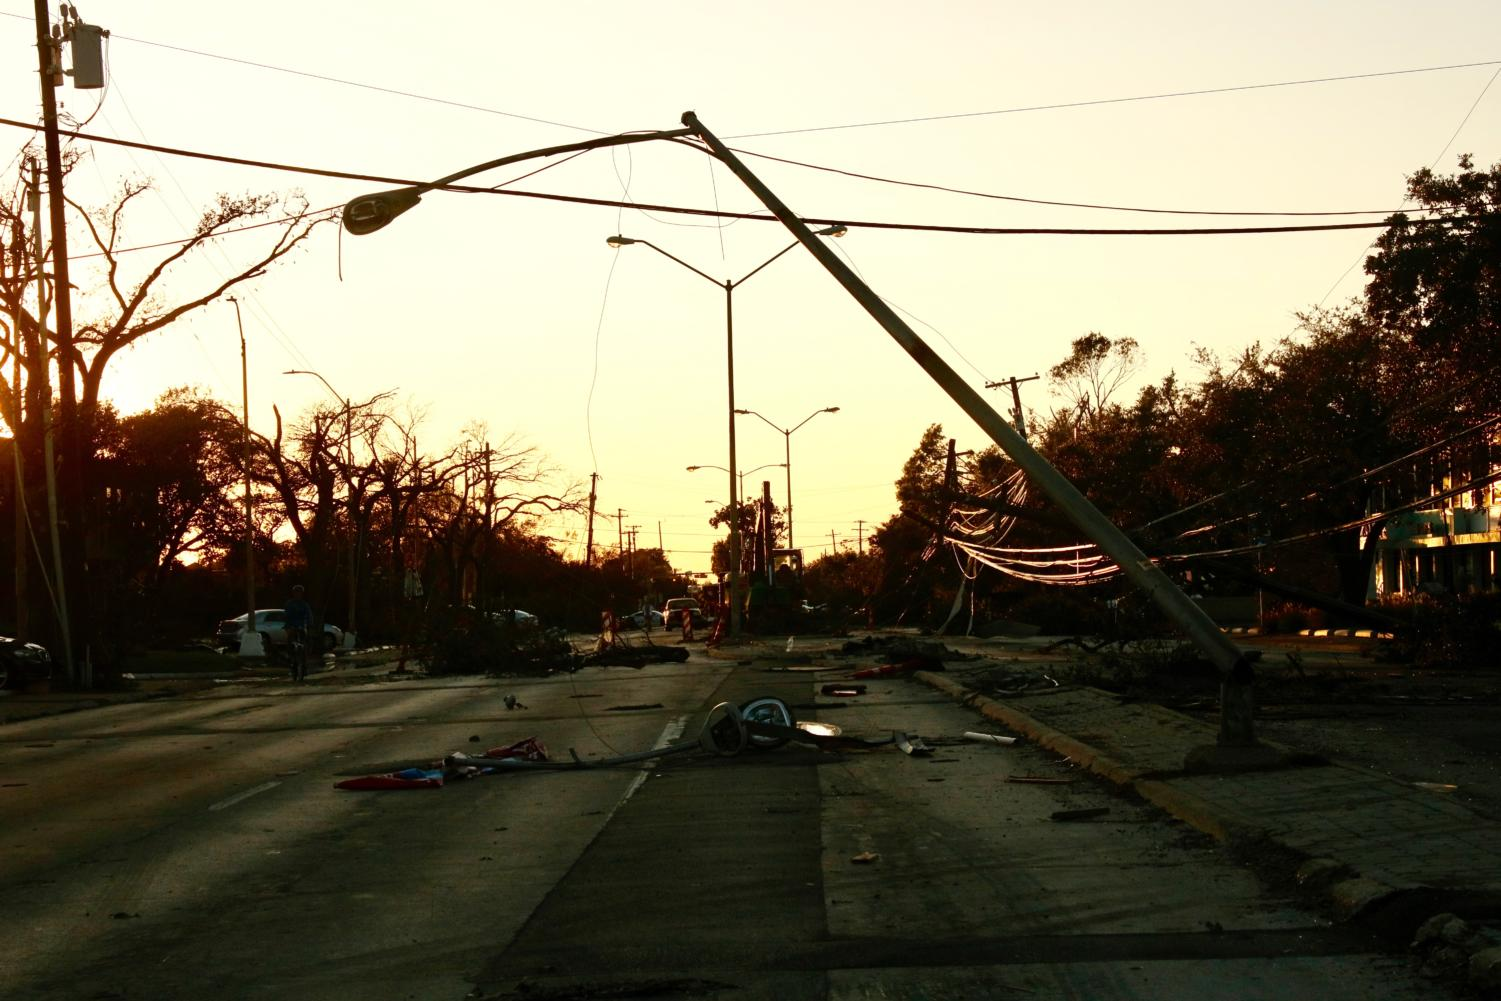 Scattered debris from street lights and trees lie on Royal Lane in Dallas on Monday. Nine tornadoes hit North Dallas Sunday night and devastated many businesses, residential areas and schools.